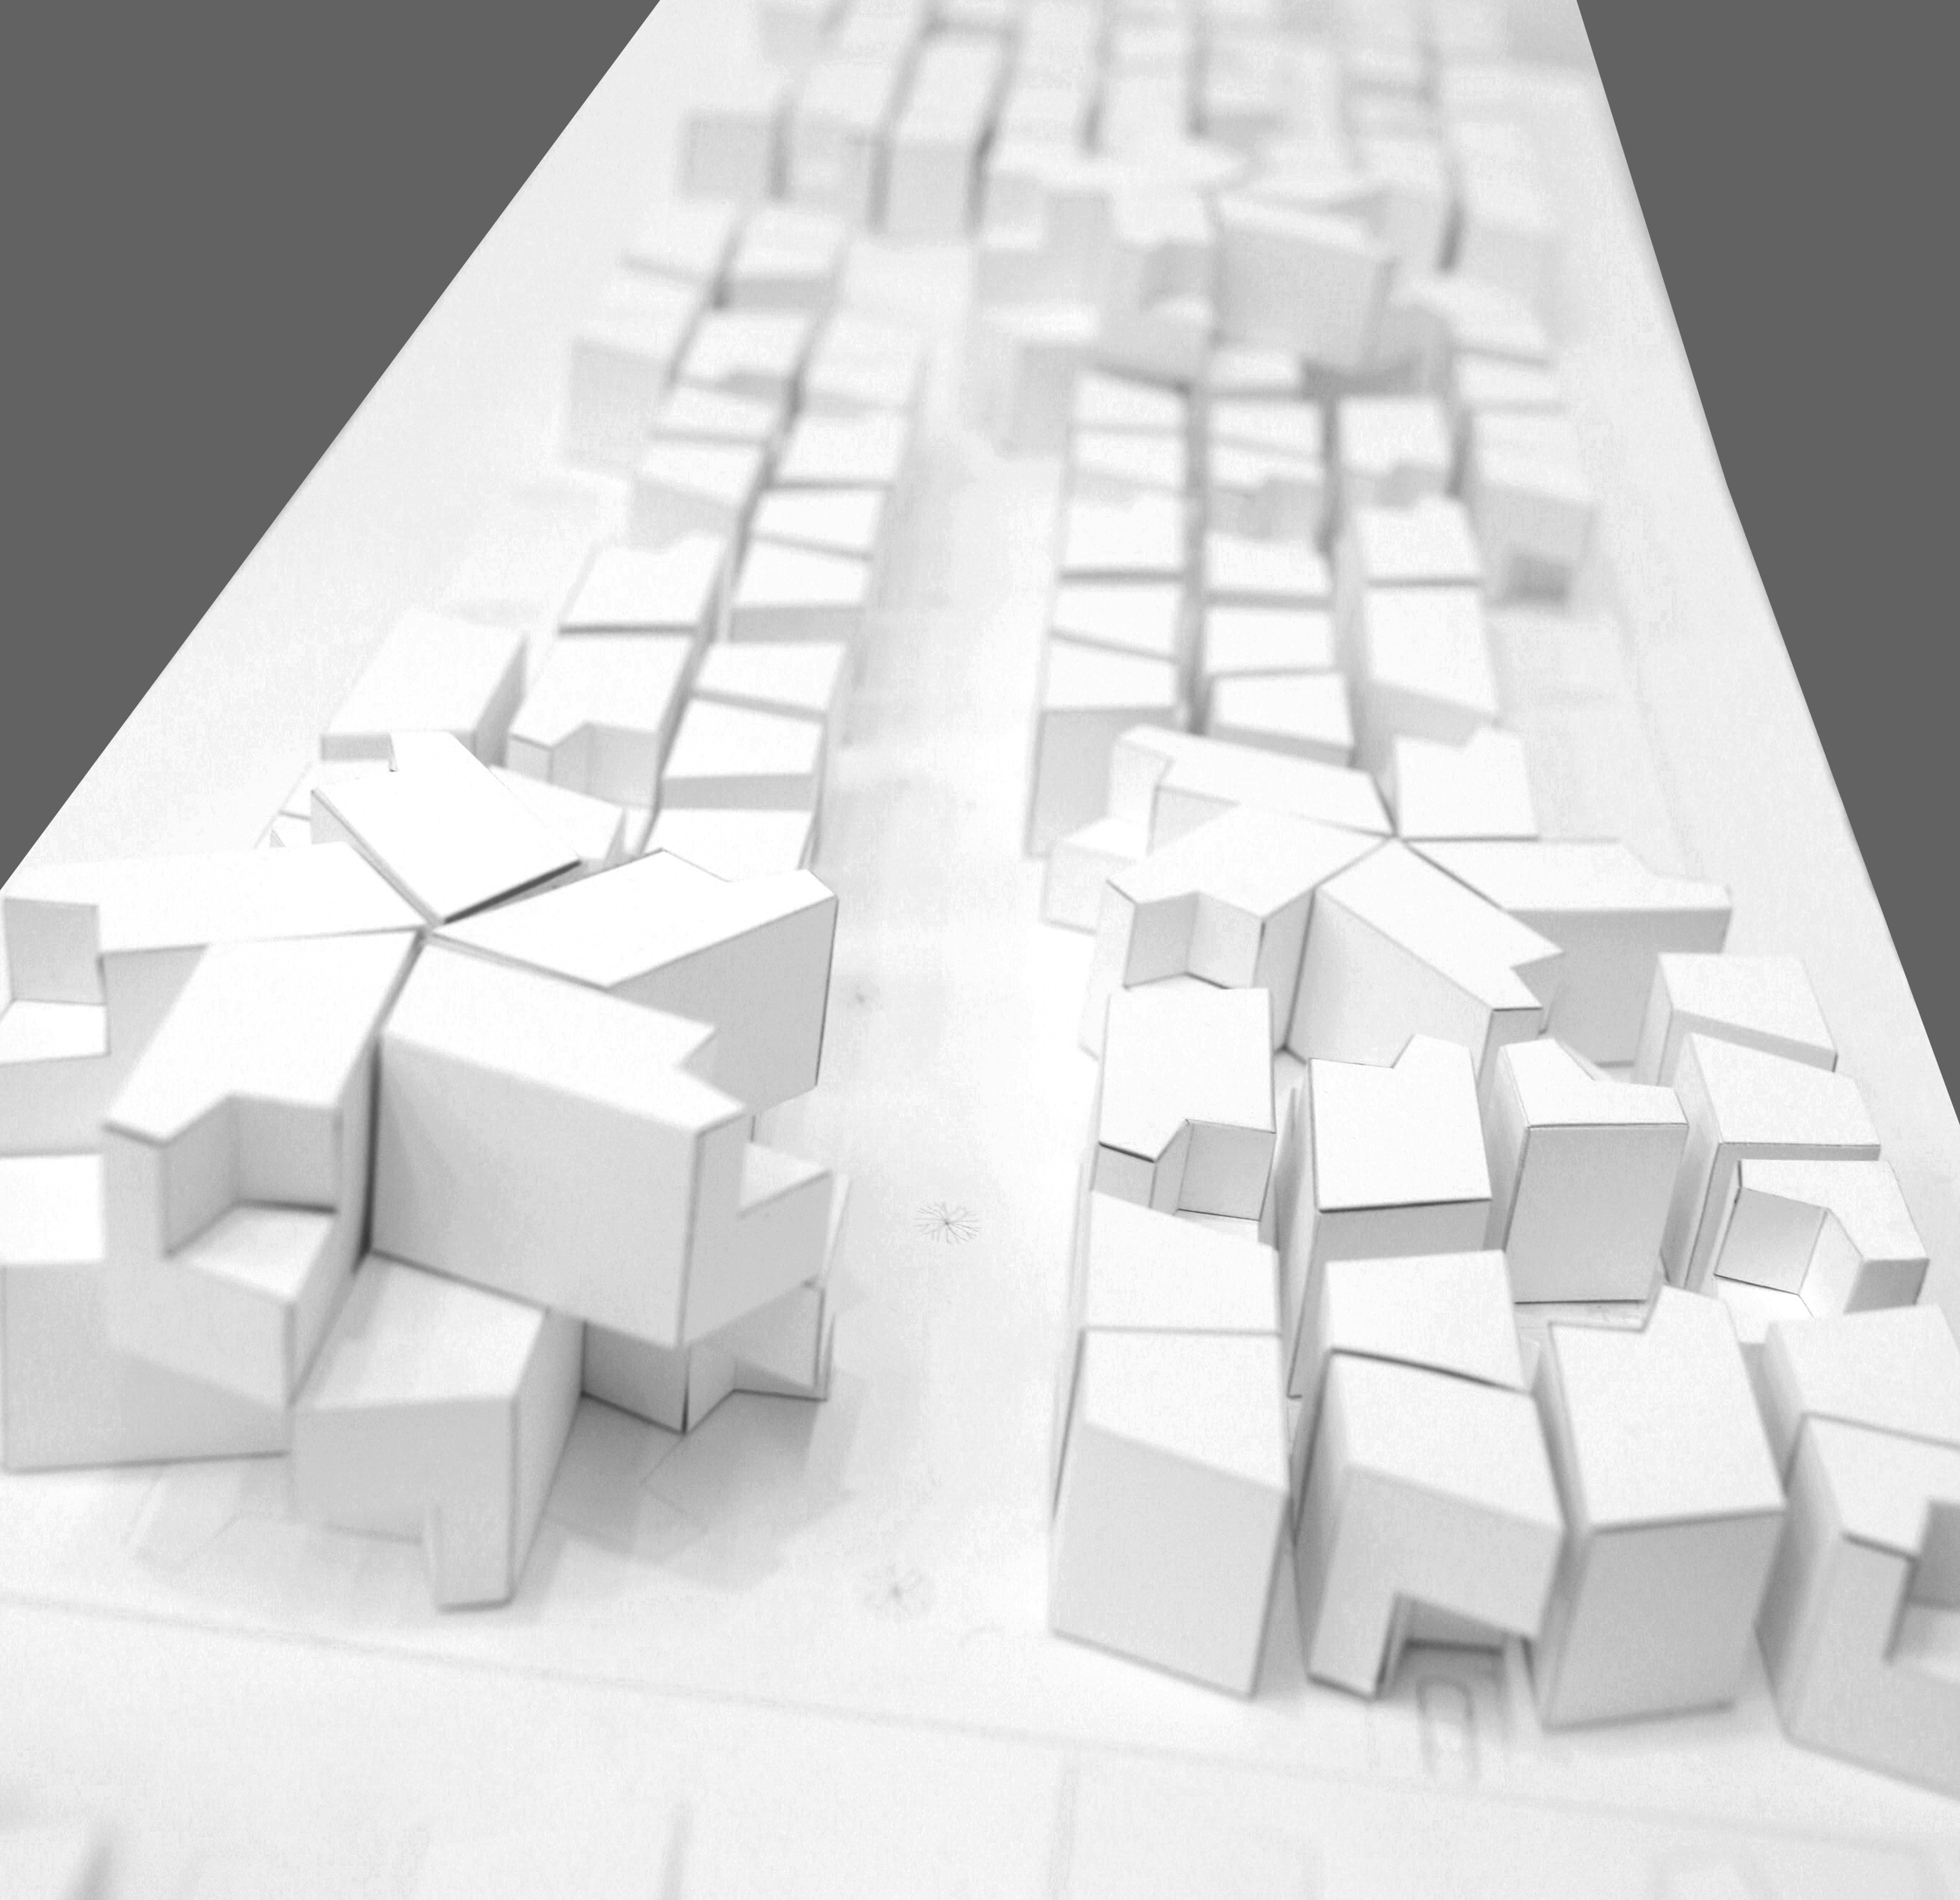 The physical model was built entirely from bristol paper. Patterns were laser-cut, then folded to create the two distinct shapes of a trapezoid and a parallelogram.